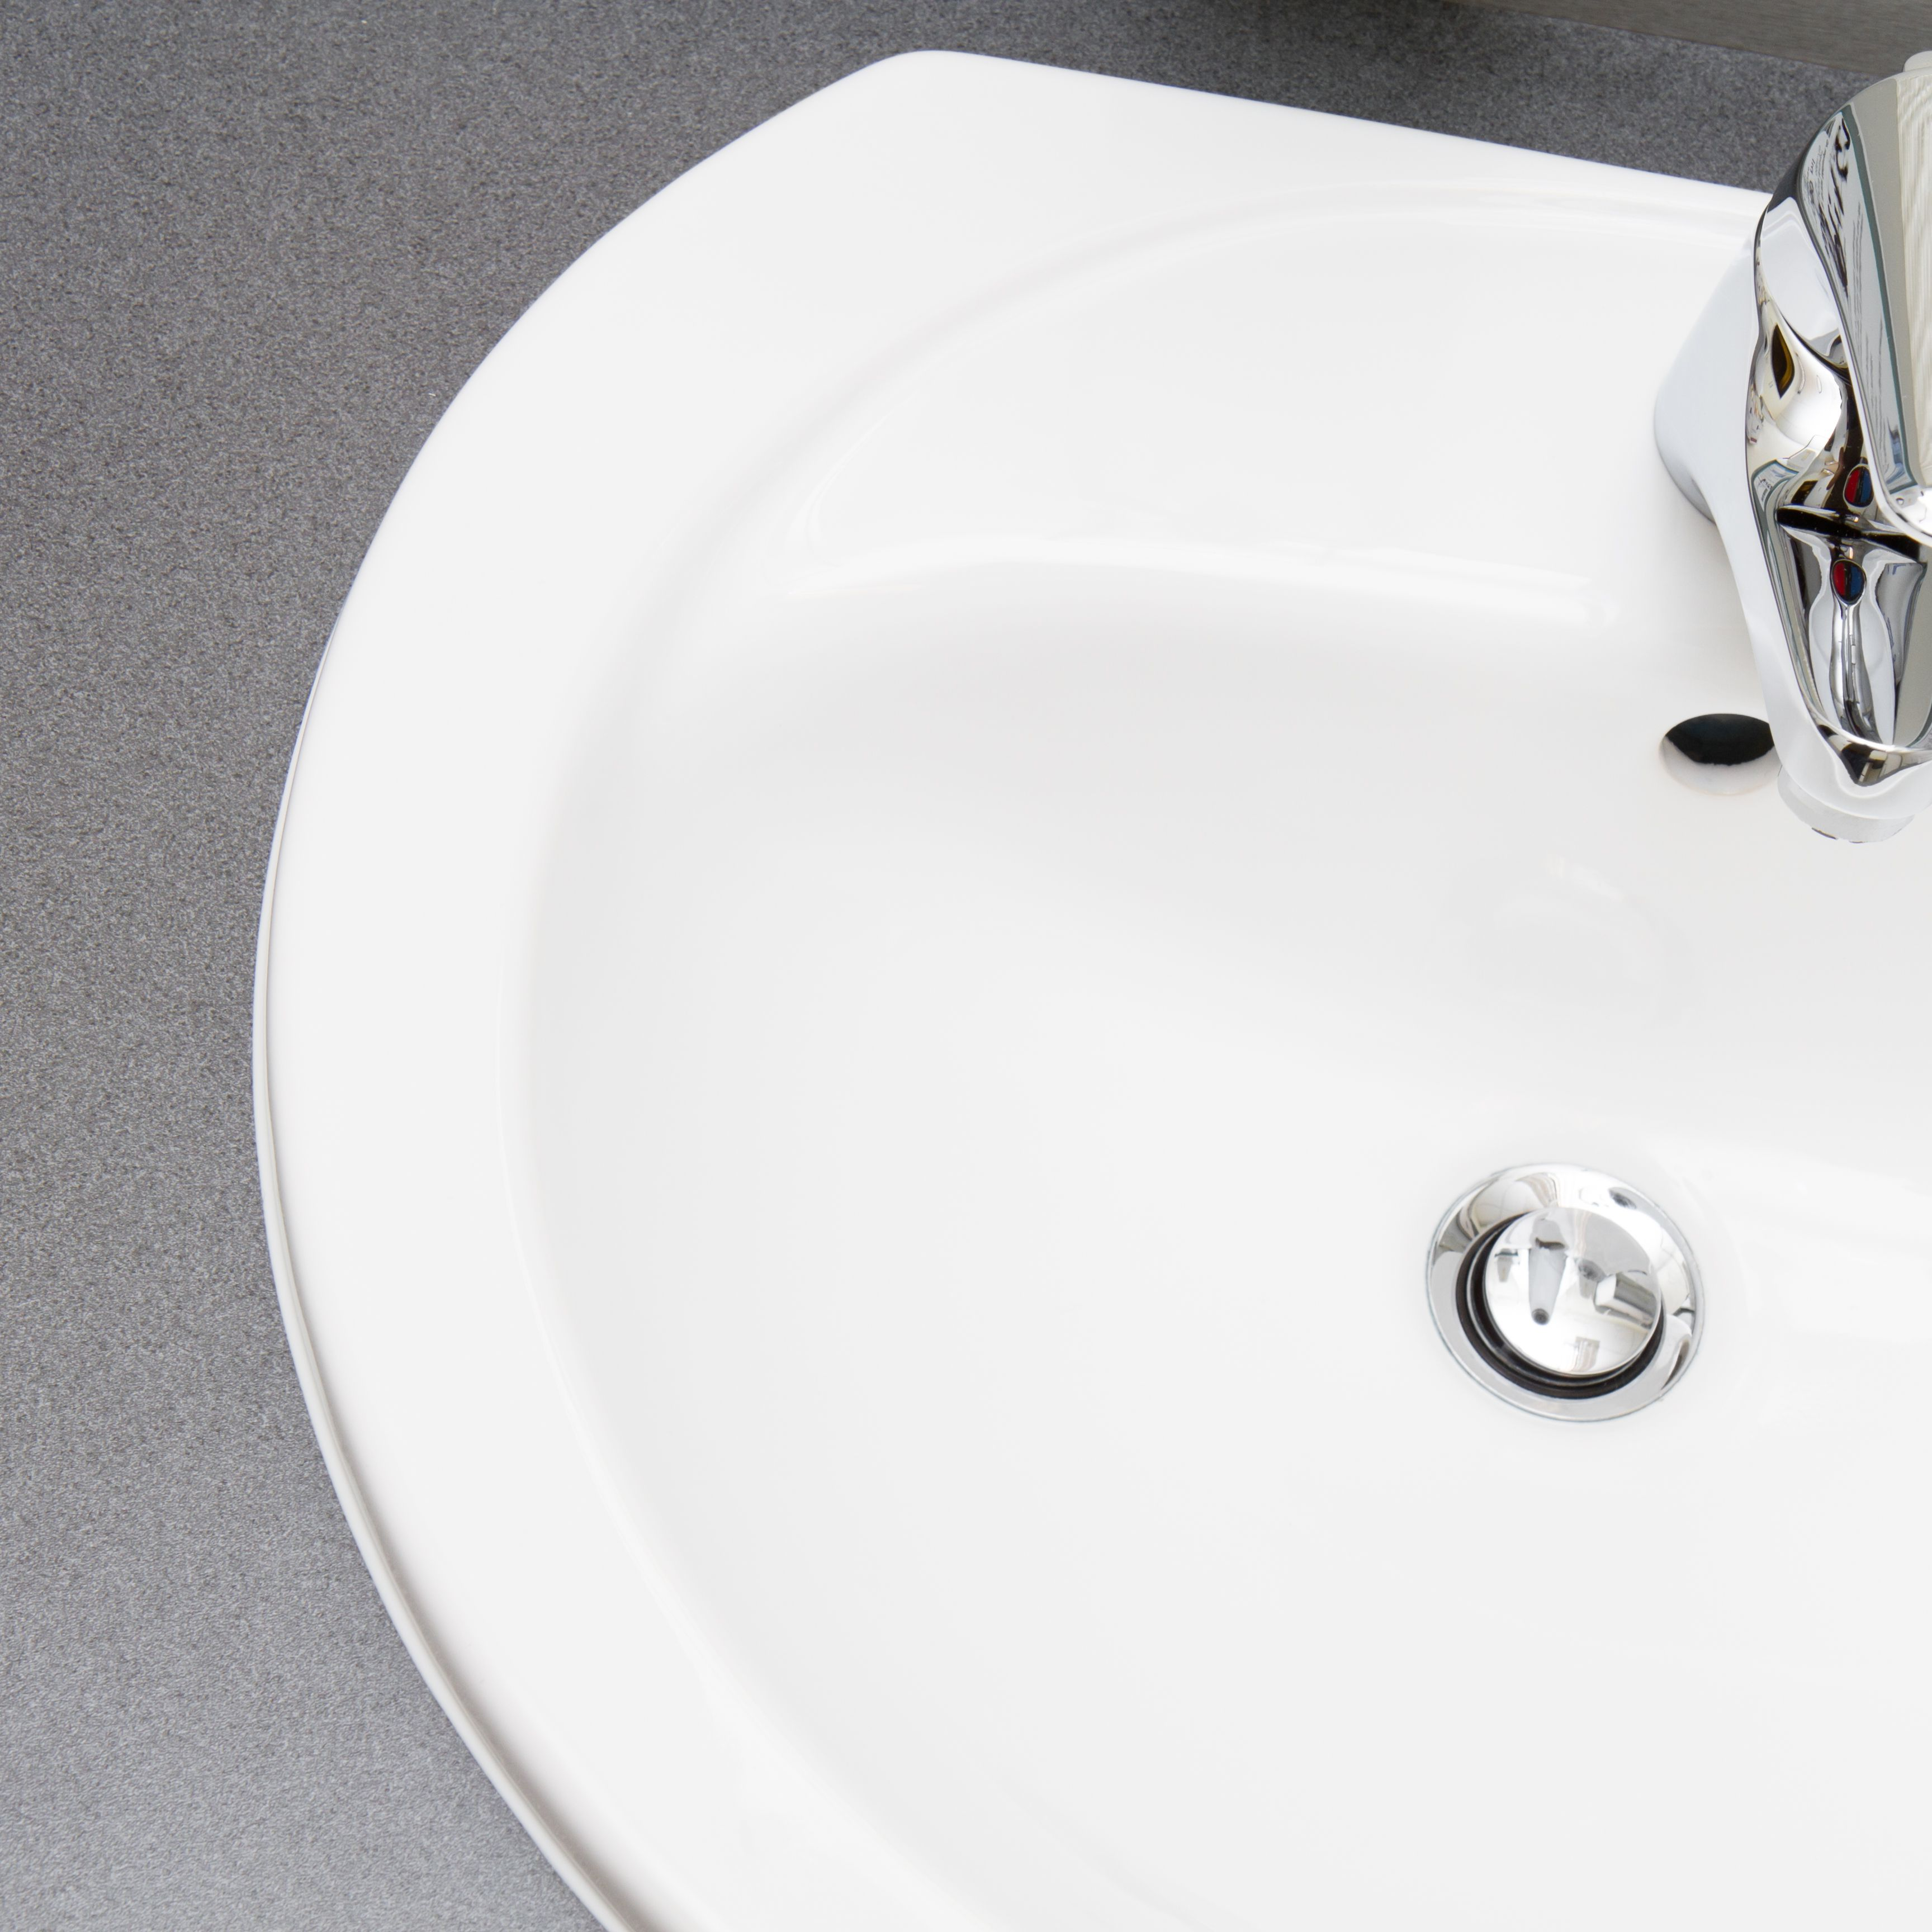 How To Install A Pop Up Drain Stopper In A Bathroom Sink